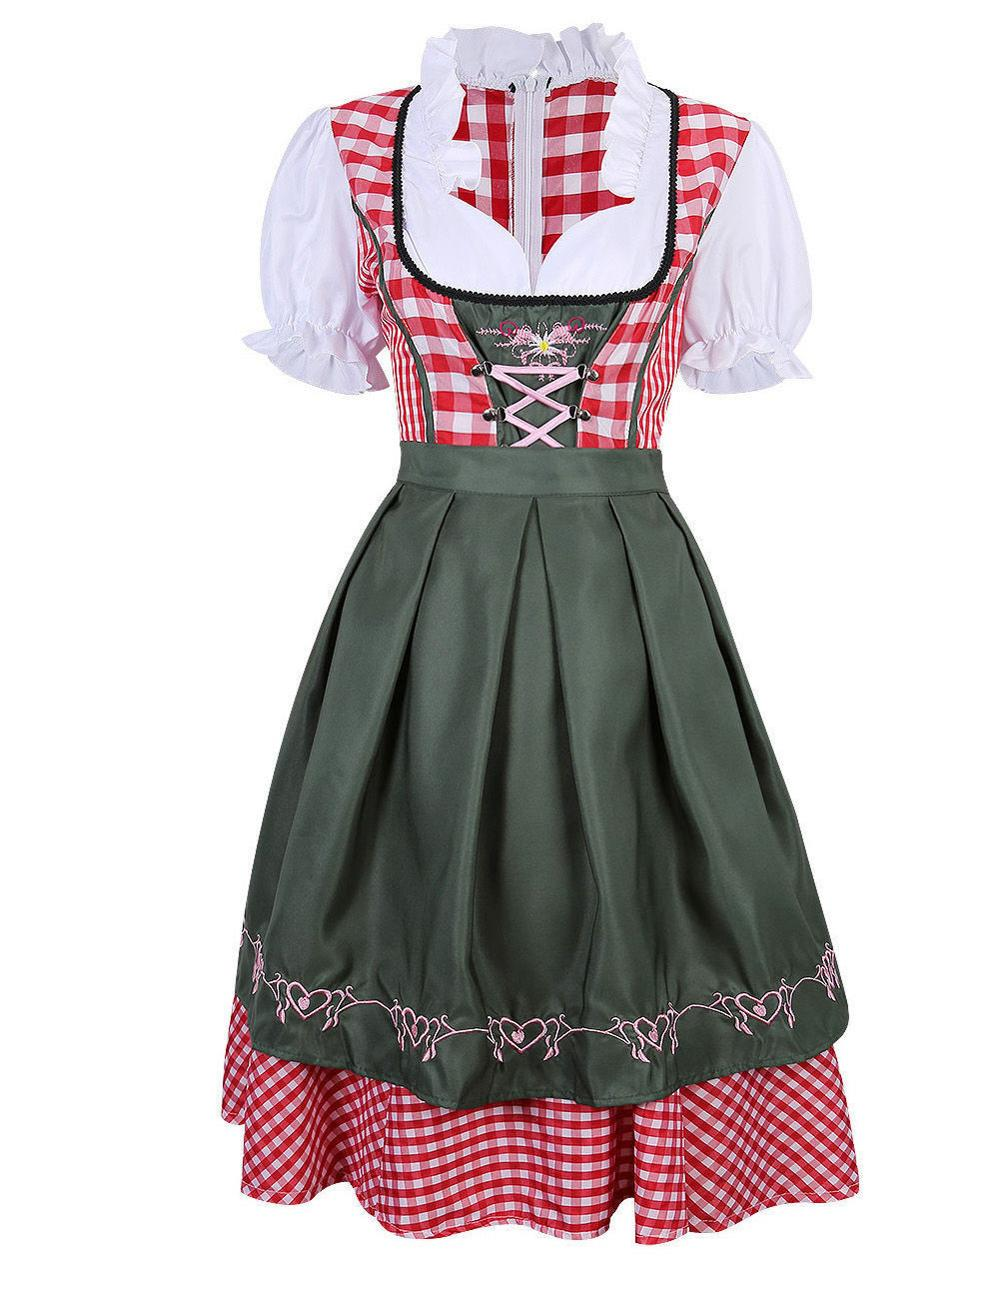 2pc/Set Traditional Dirndl German Bavarian Beer Girl Costume Oktoberfest Festival Fancy Dress